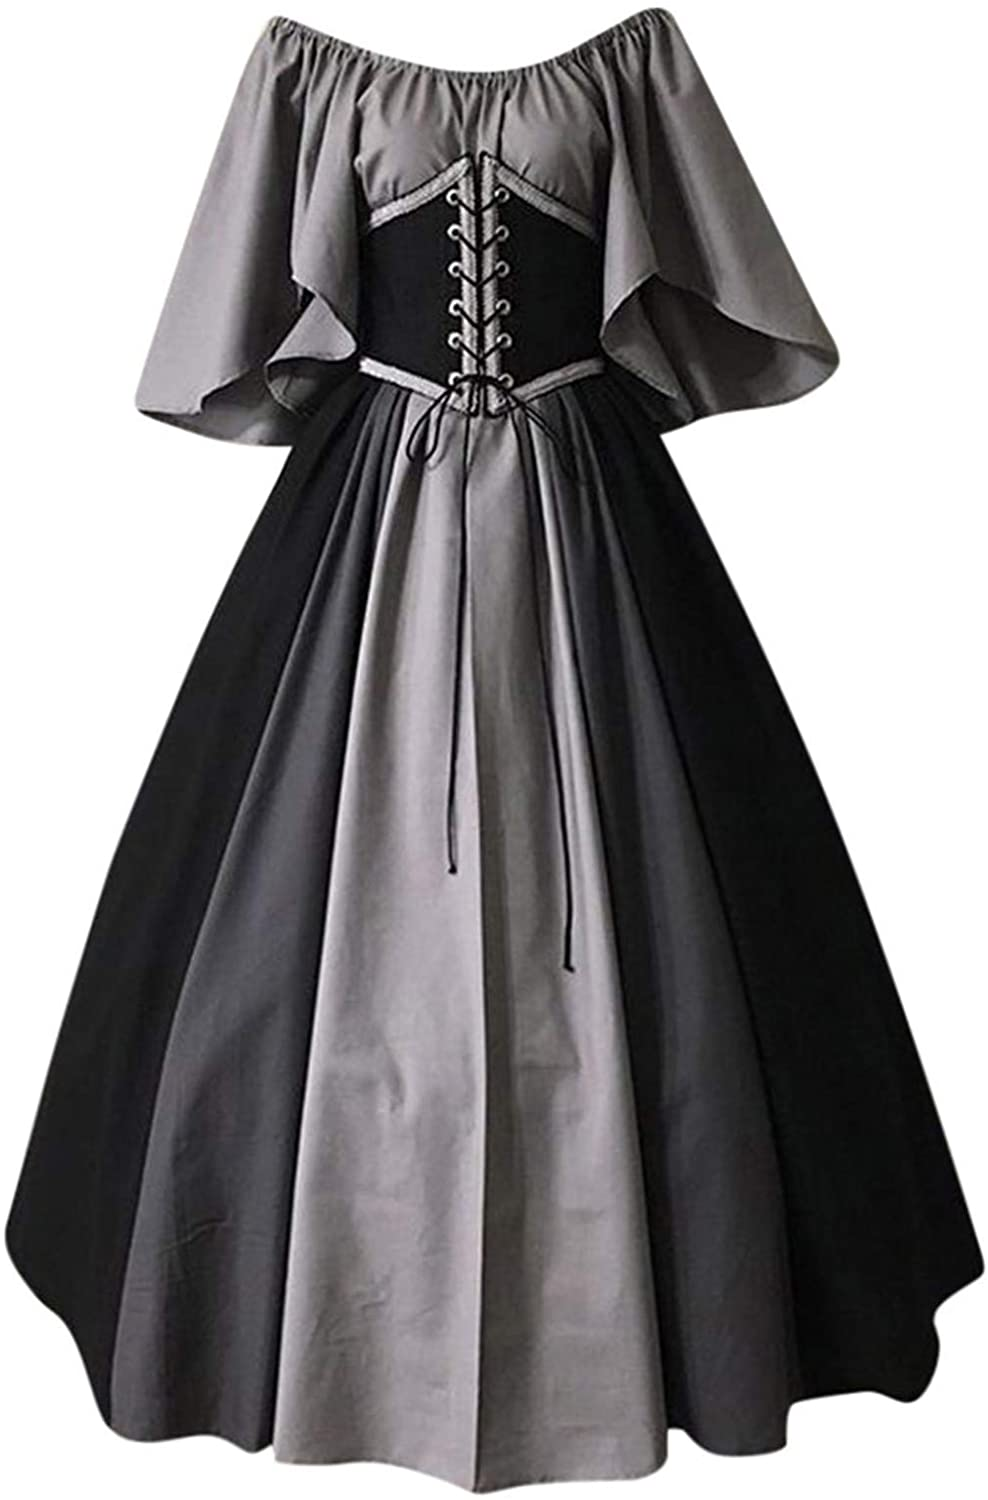 Women's Vintage 67% OFF of fixed price Renaissance Medieval Cosplay Gothic shopping Prom Elegent